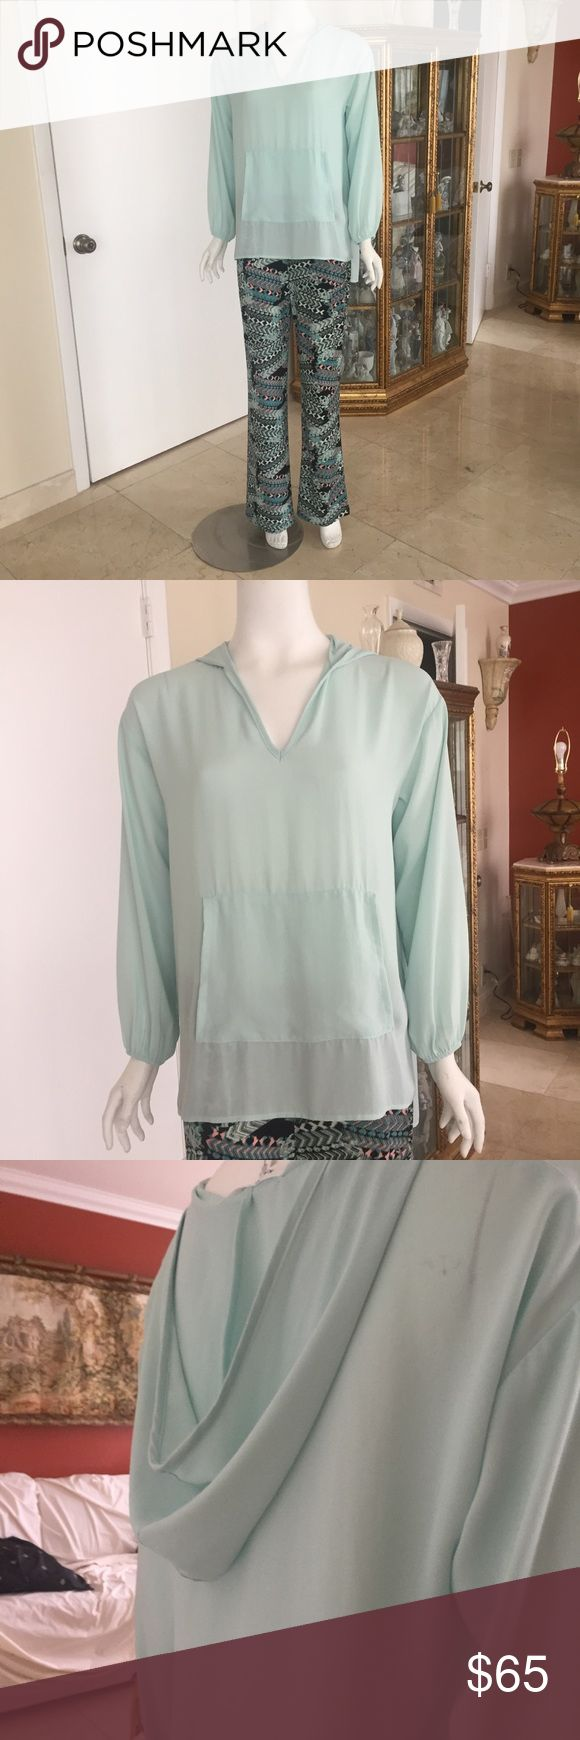 Karen Kane set, Karen Kane spectacular set of top and pants, perfect for your next cruise. Or for any other occasion.  Set is new, never worn, still with tags.  Top is a small but it runs big, pants are medium. Karen Kane Other